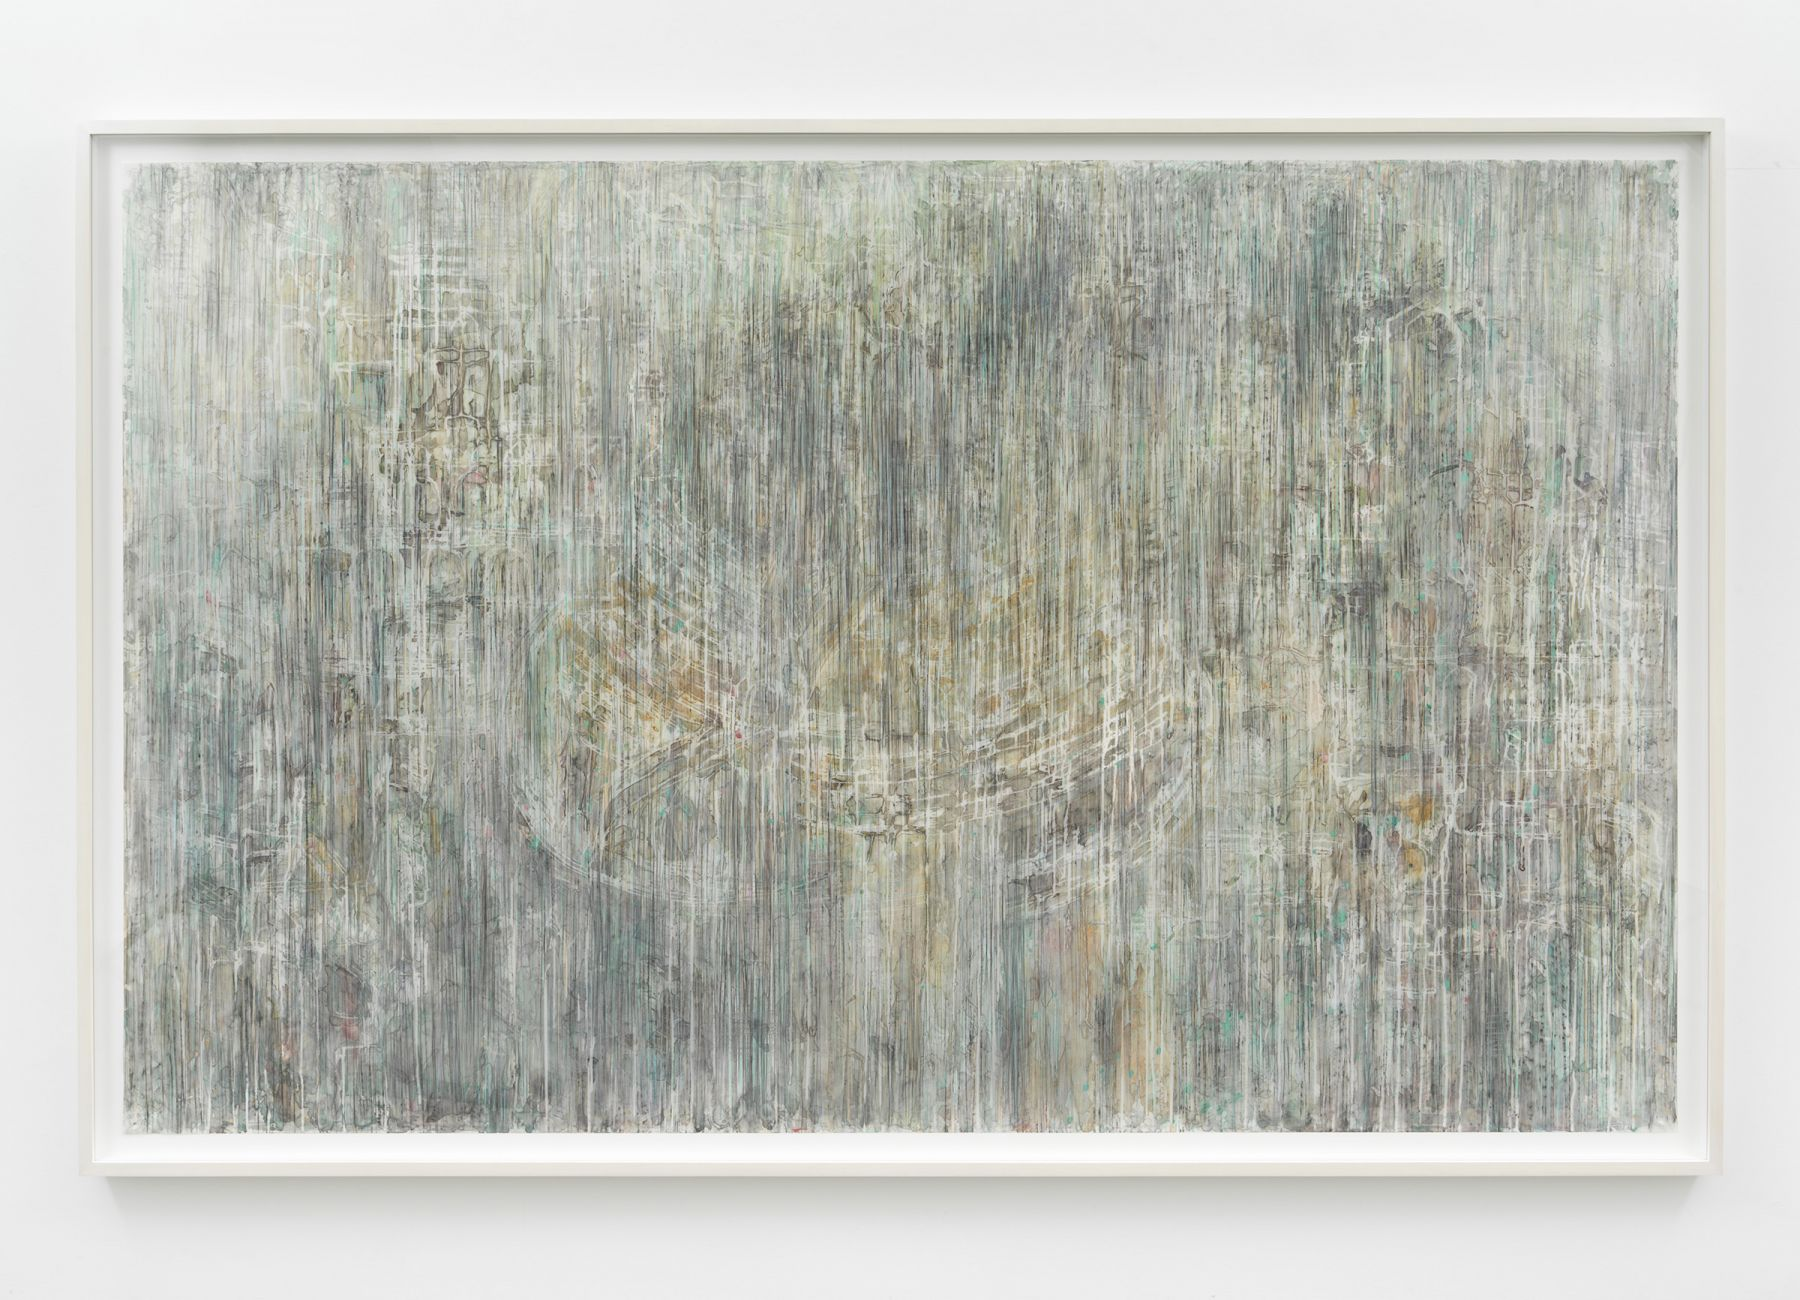 a work on mylar by Diana Al-Hadid on exhibition in a NYC gallery